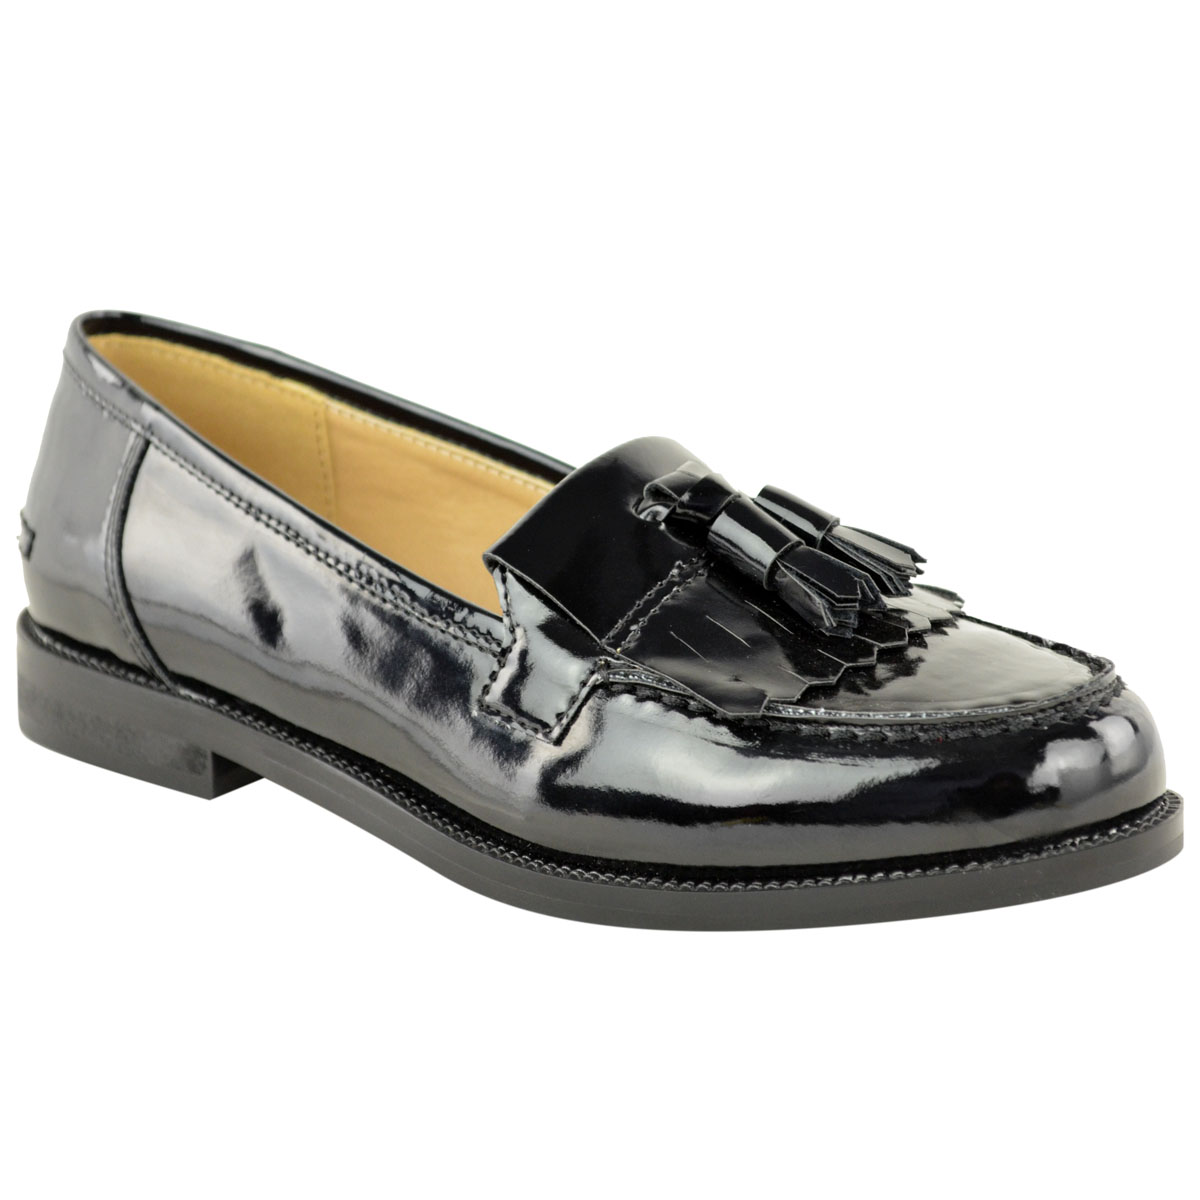 842ba67002482e WOMENS LADIES FLAT CASUAL OFFICE PATENT FAUX LEATHER FRINGE TASSEL ...